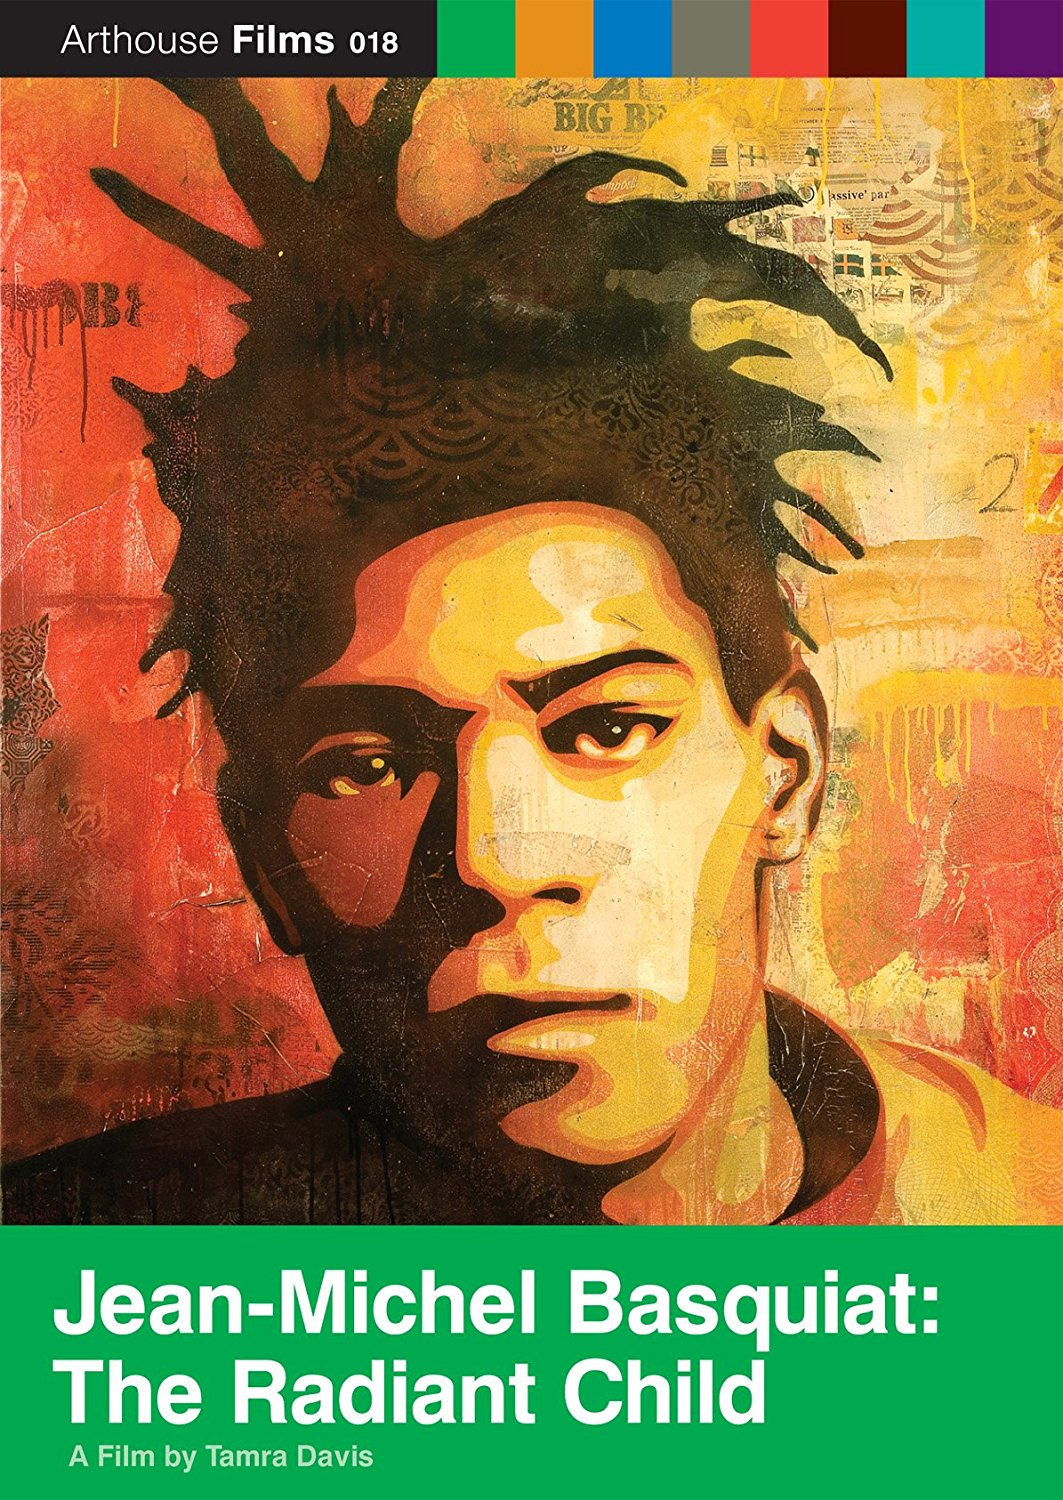 basquiat-radiant child.jpg